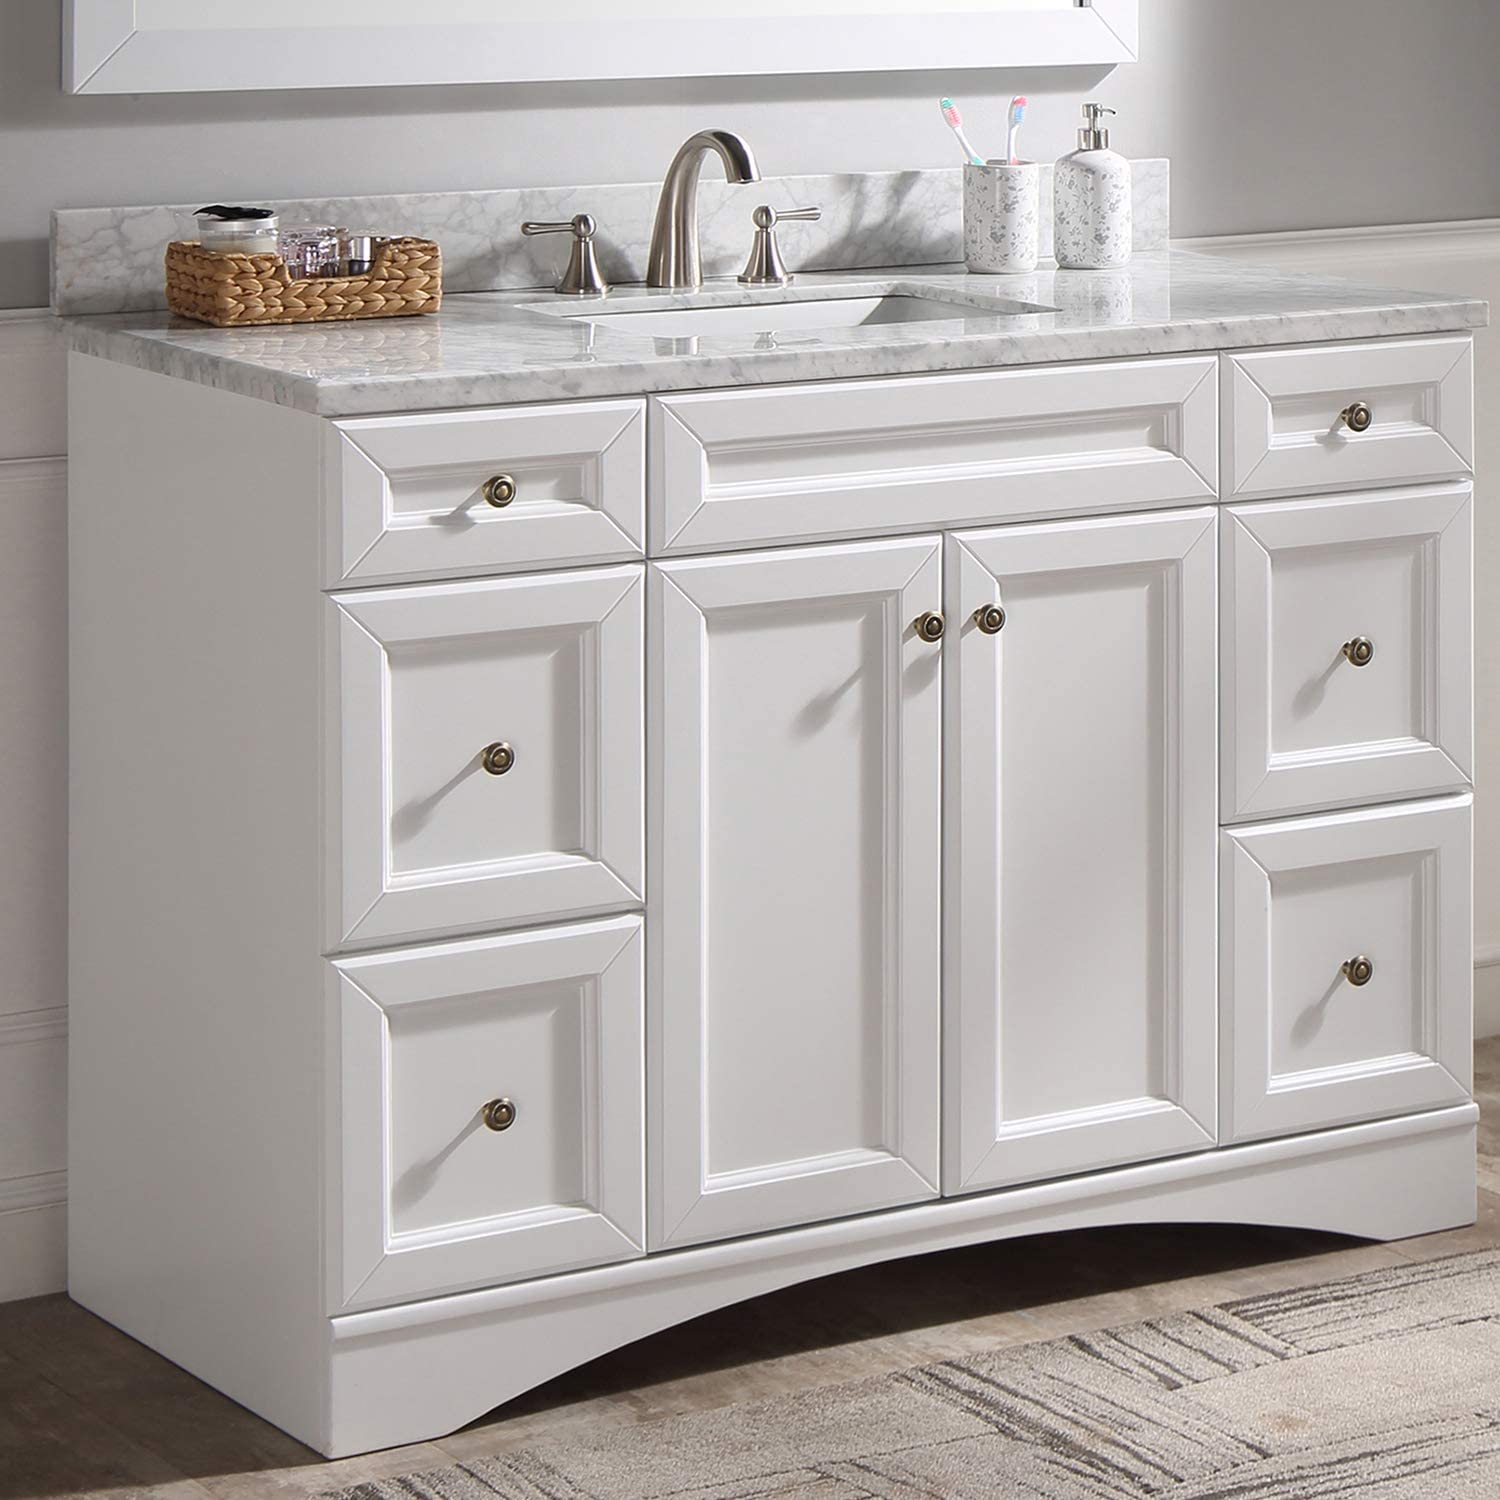 Amazon Com 48 Single Bathroom Vanity Bathroom Vanity With Marble Top And Round Sink 48 Inches White Tools Home Improvement